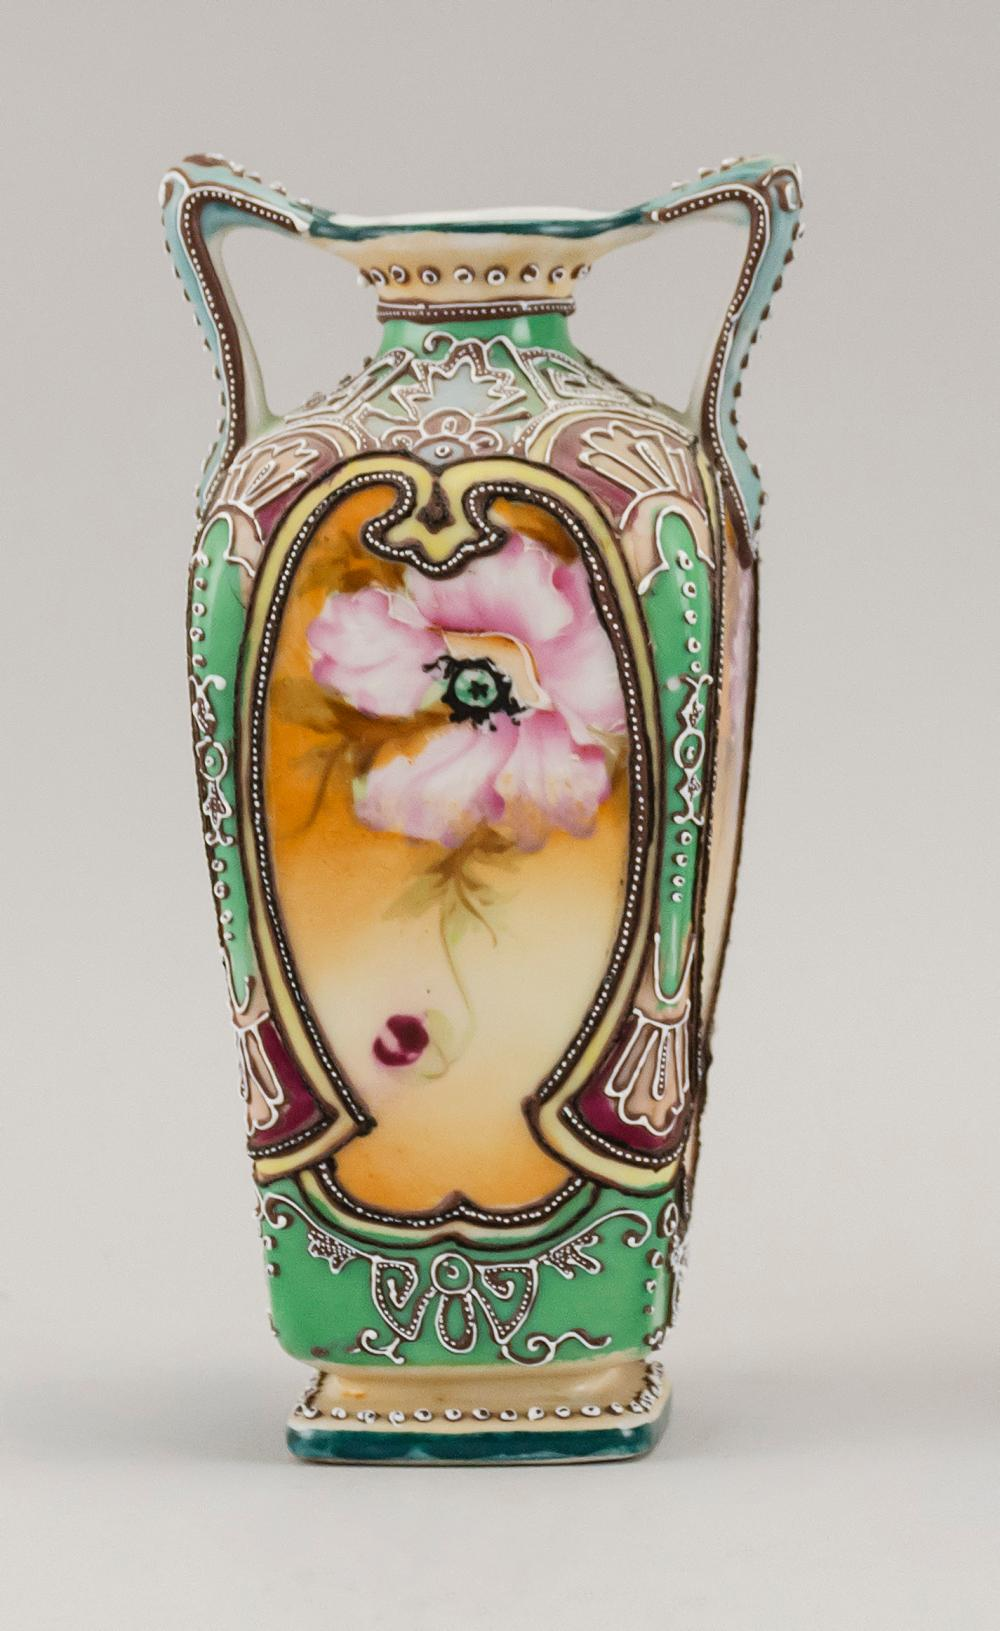 MORIAGE NIPPON PORCELAIN VASE In modified rectangular form, with two handles and floral decoration. Trident mark on base. Height 7